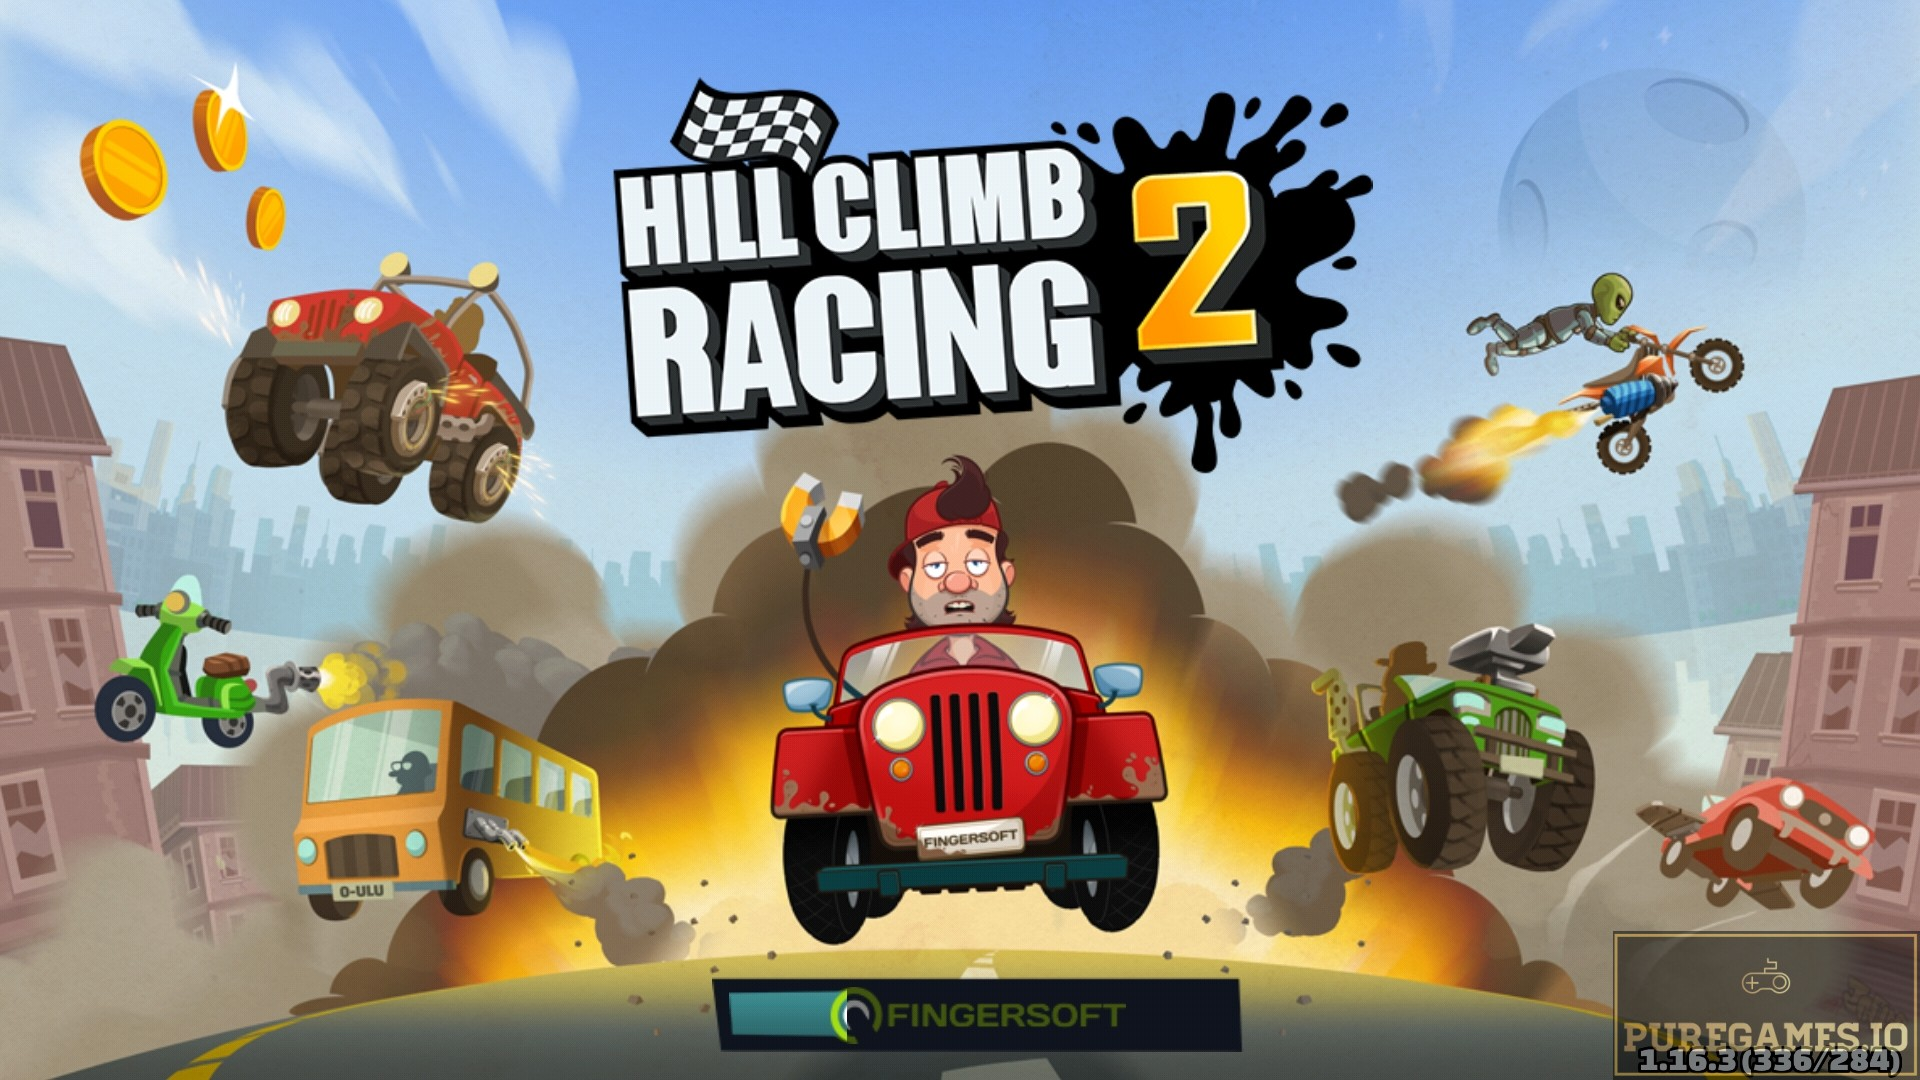 Download Hill Climb Racing 2 APK - For Android and iOS 3